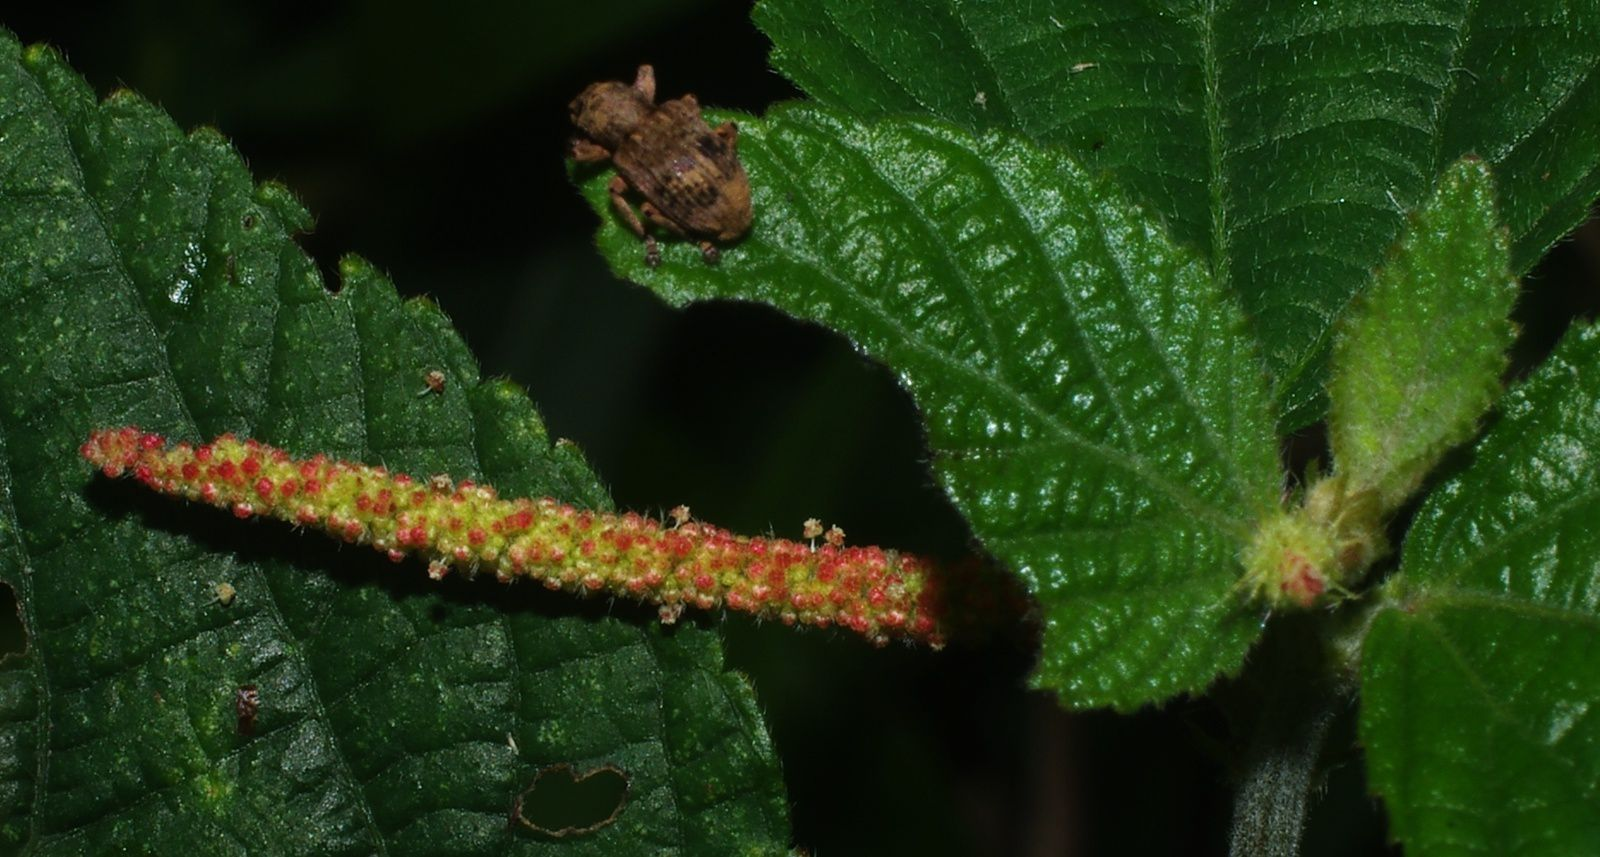 Acalypha aristata